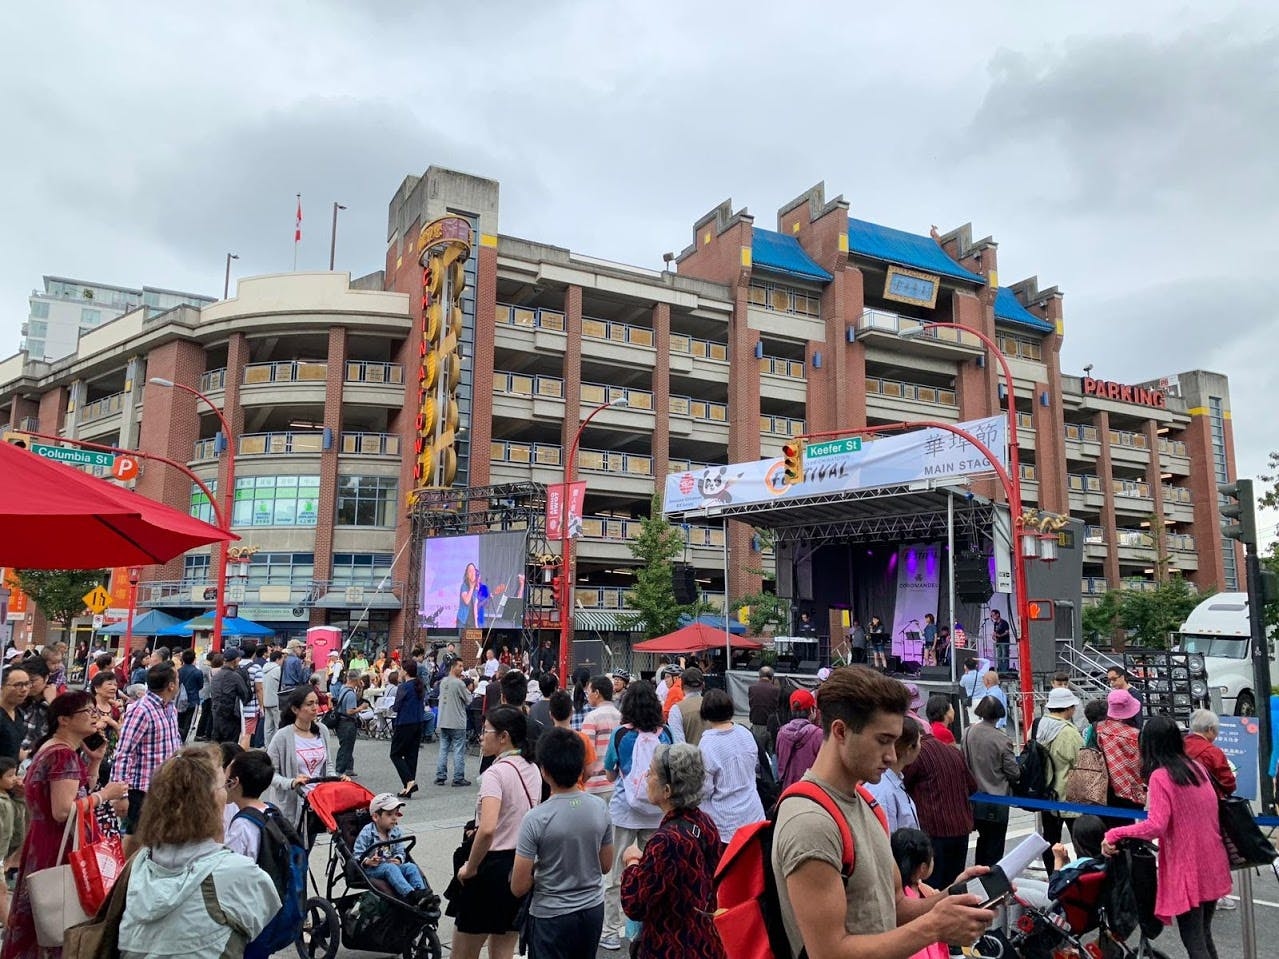 A large event with a stage for presentations is being held at Memorial Square.